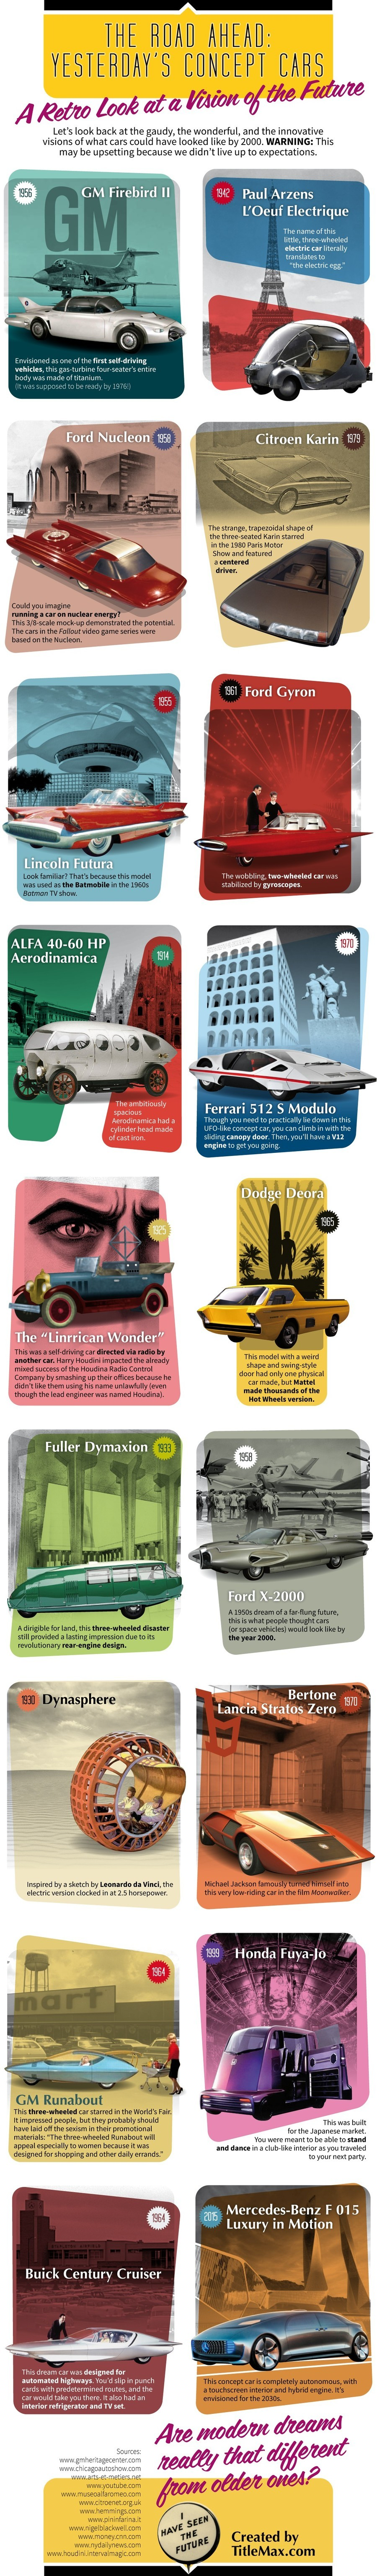 Concept Cars You'll Never Get to Drive. This is a list of 18 concept cars that could have changed the automotive industry but they never came to fruition. From